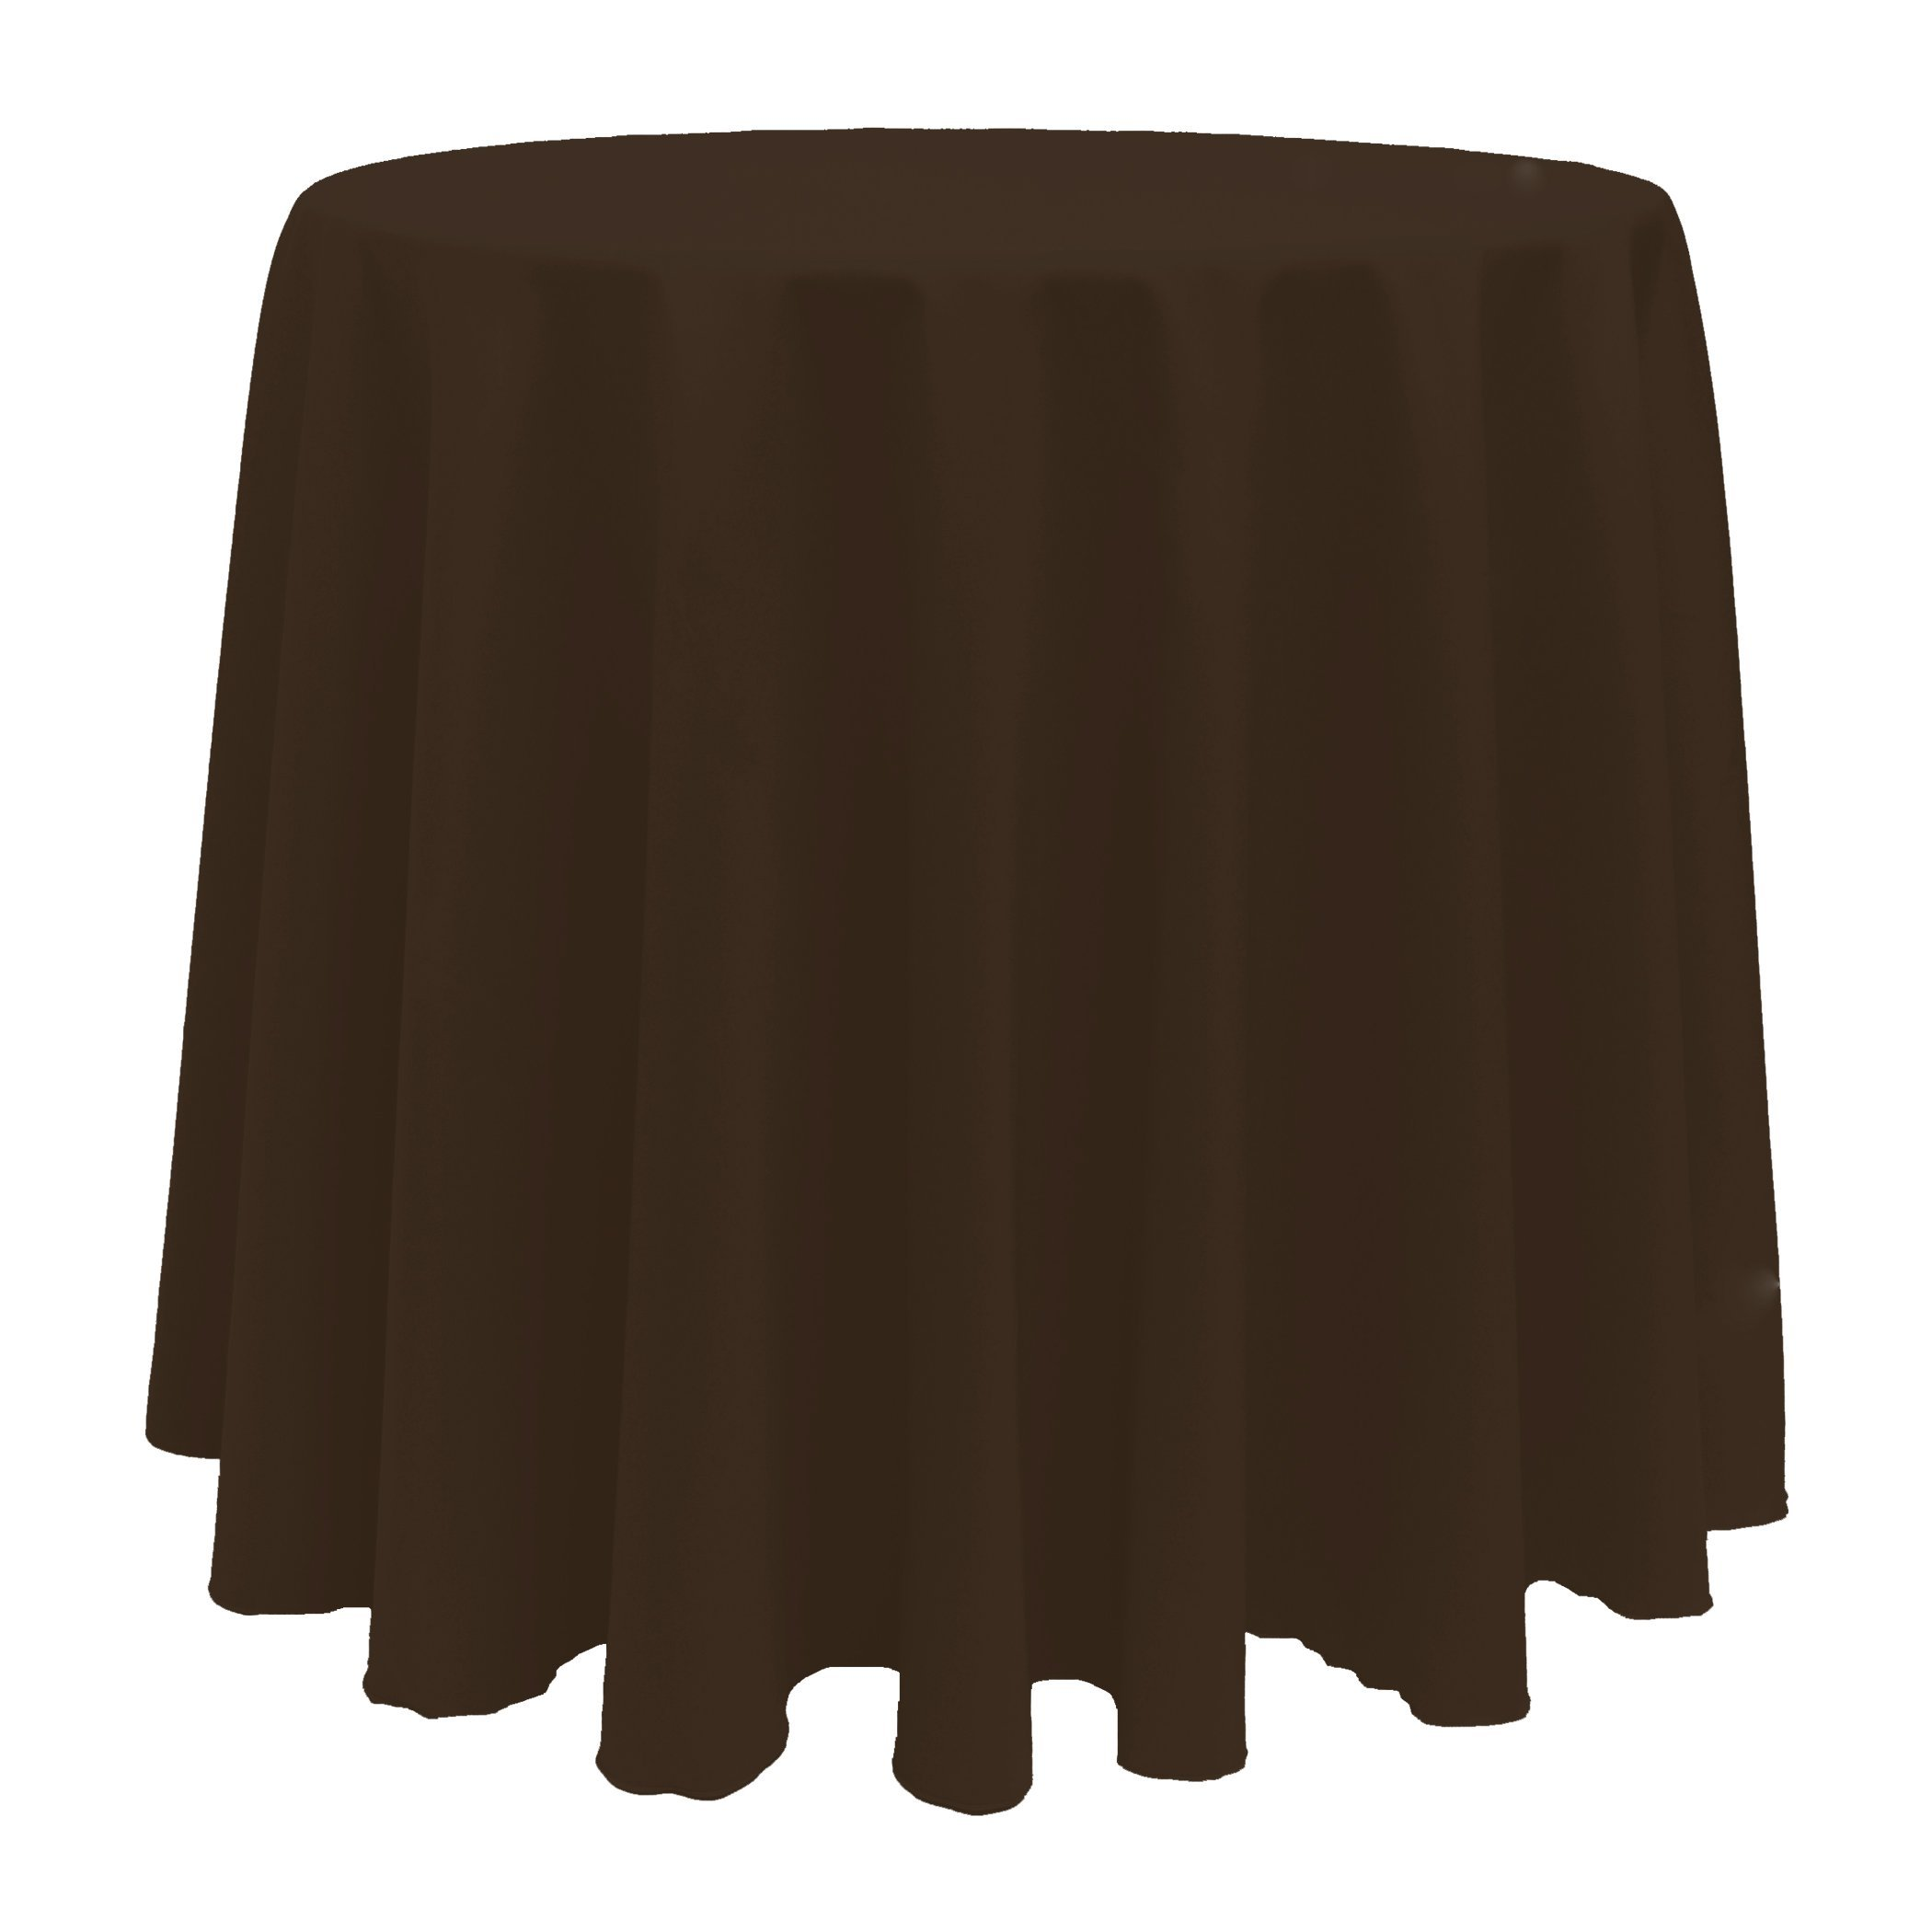 Ultimate Textile (3 Pack) 114-Inch Round Polyester Linen Tablecloth - for Wedding, Restaurant or Banquet use, Chocolate Brown